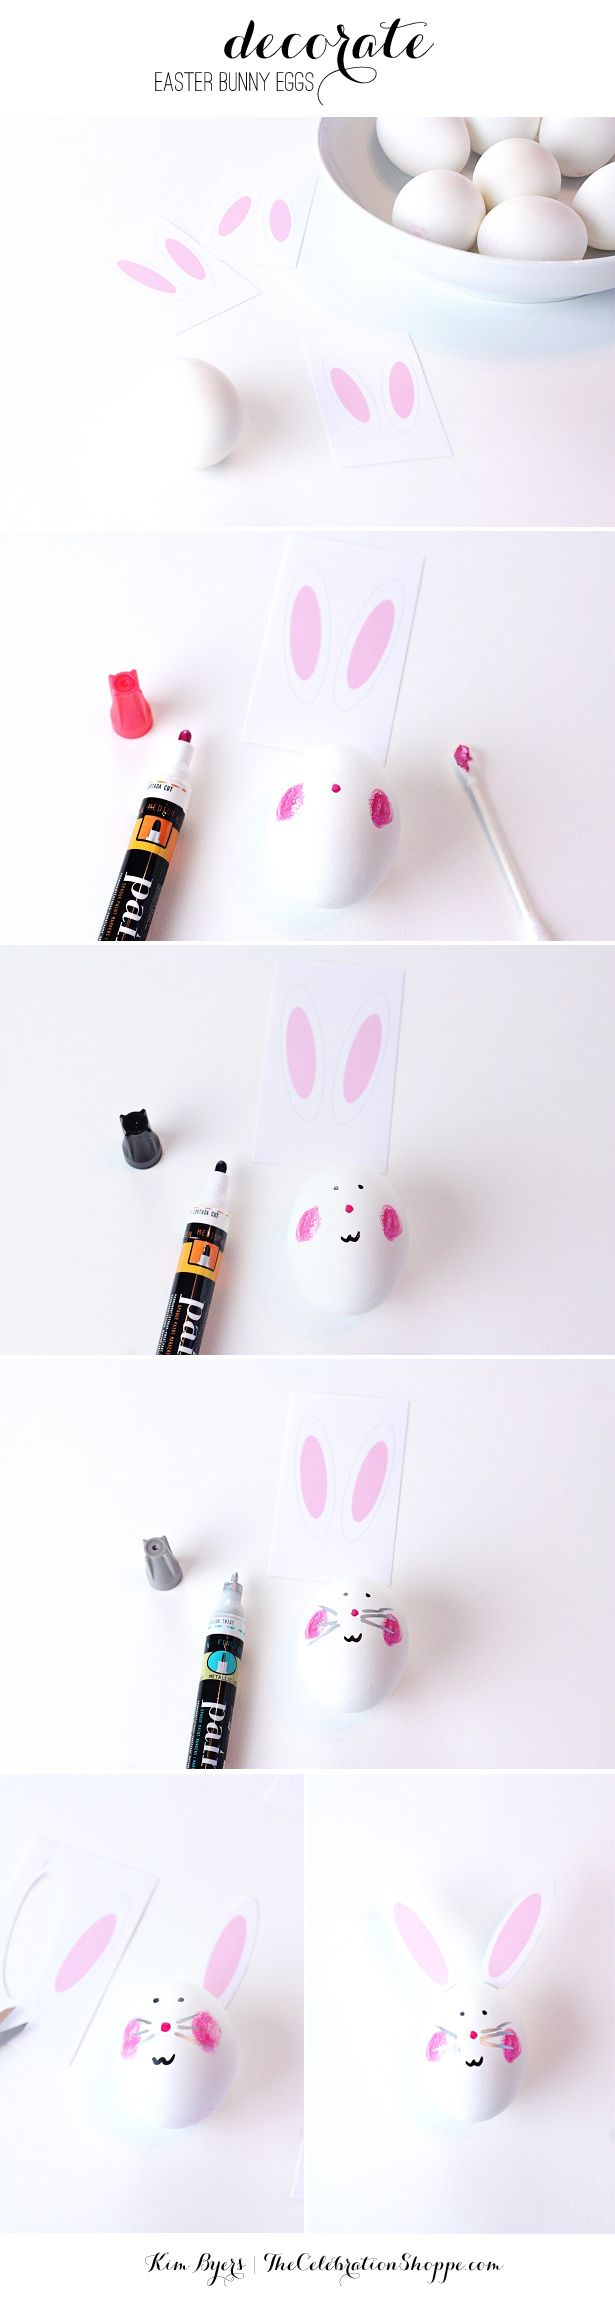 DIY Easter Egg Easter Bunnies | Decorating Easter Eggs @kimbyers TheCelebrationShoppe.com